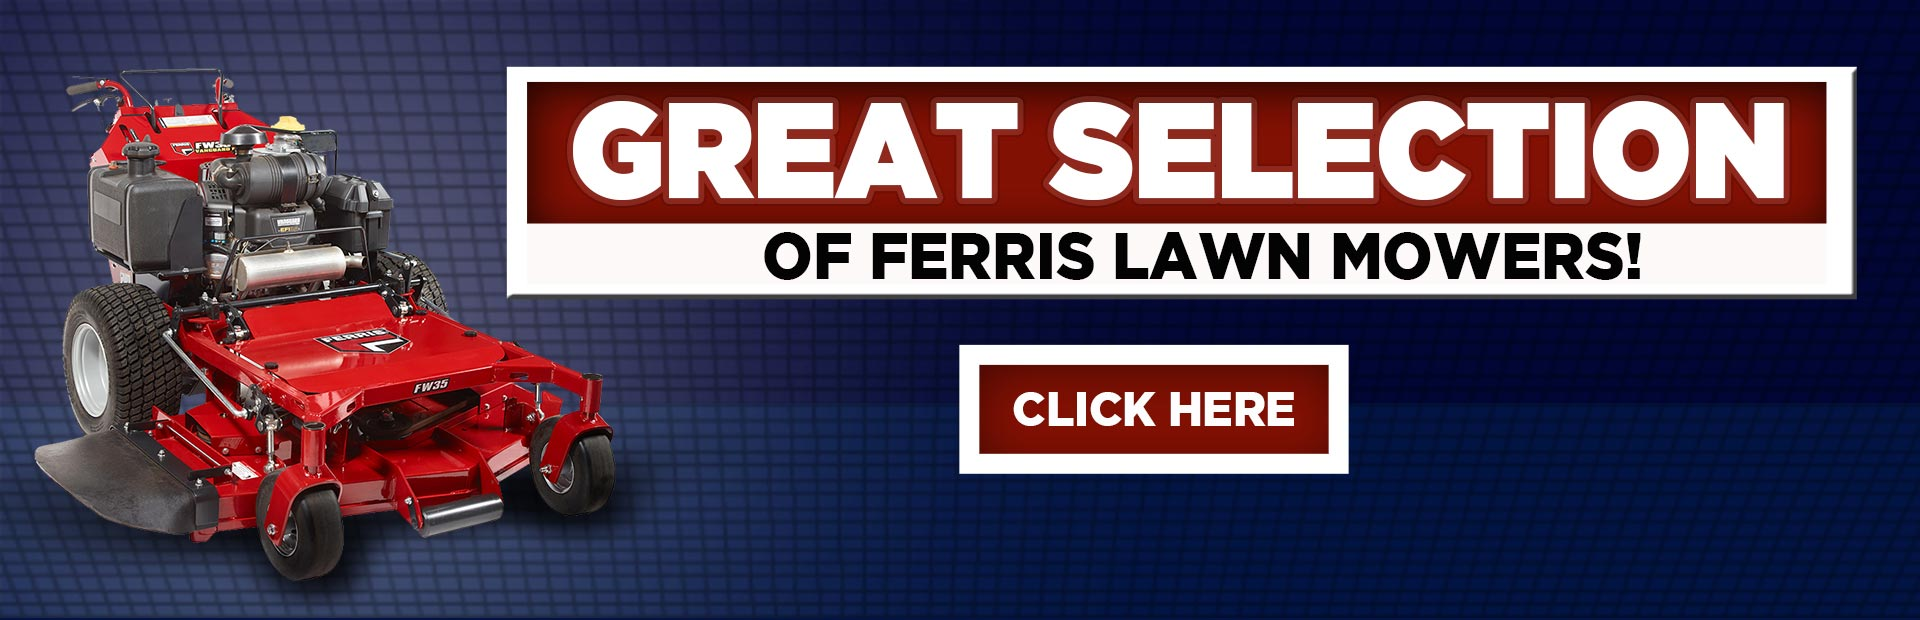 We have a great selection of Ferris lawn mowers. Click here to view them.